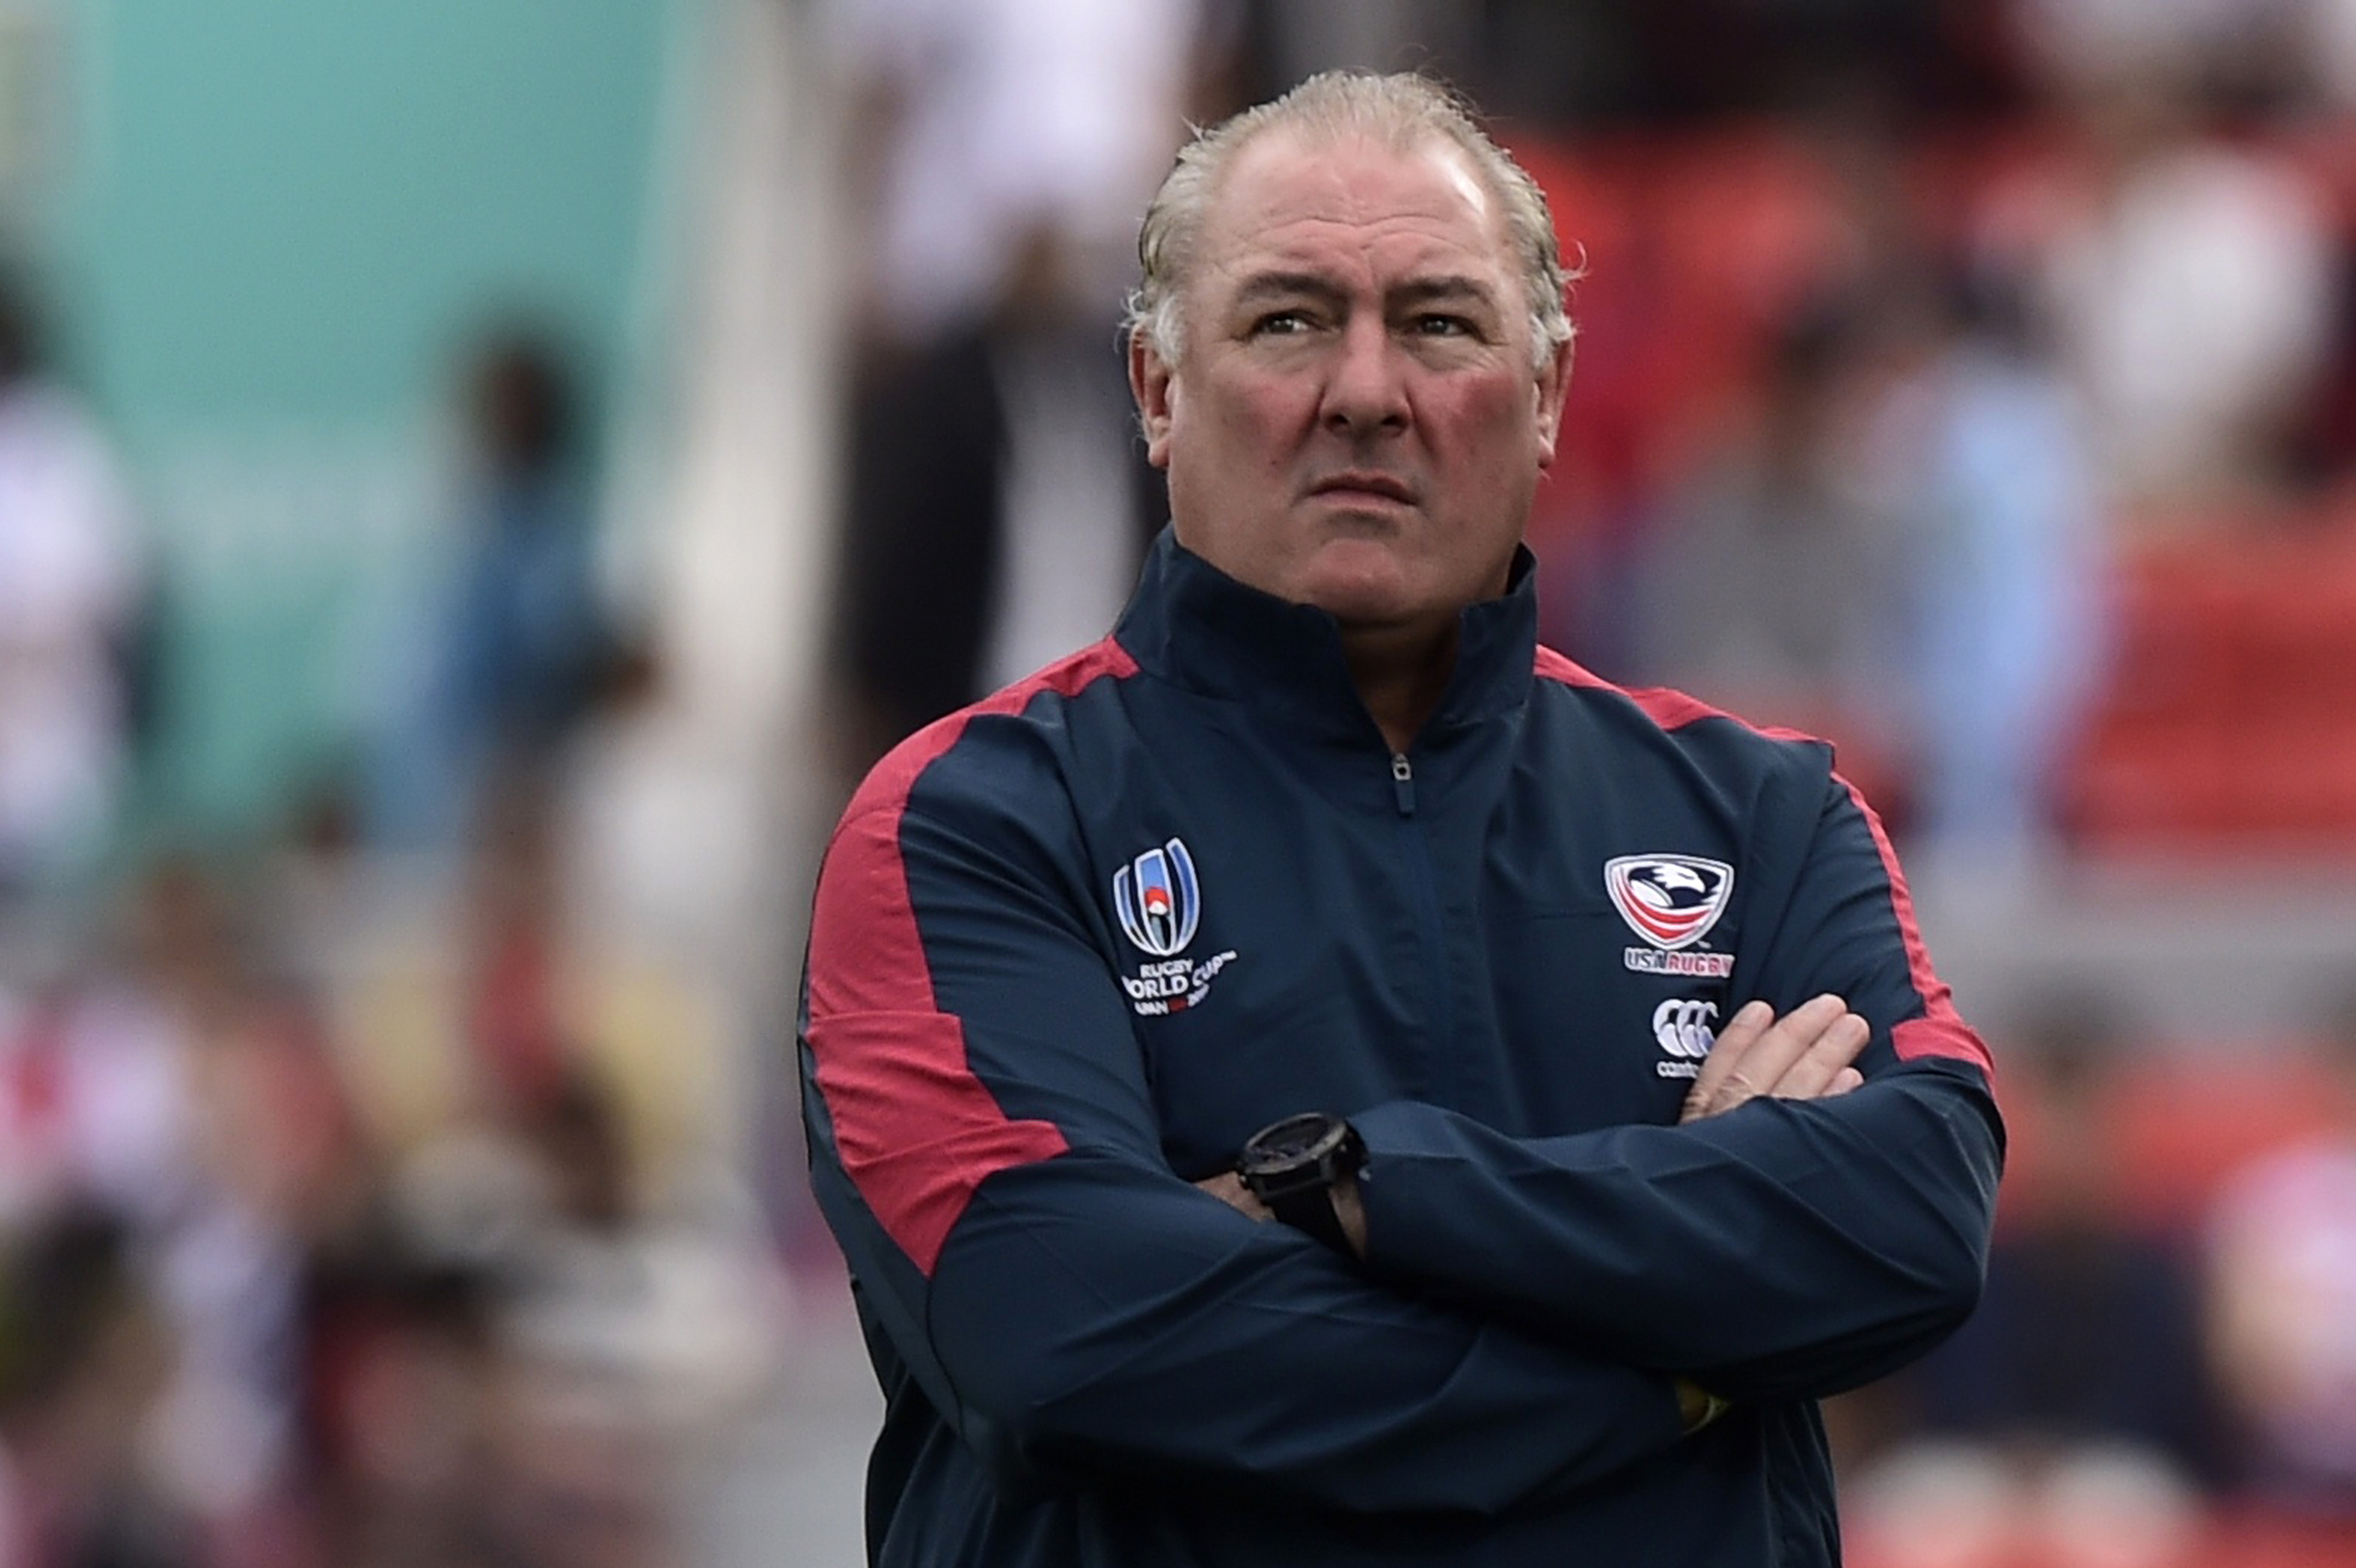 Rugby Union - Rugby World Cup 2019 - Pool C - United States v Tonga - Hanazono Rugby Stadium, Osaka, Japan - October 13, 2019. U.S. head coach Gary Gold reacts before the match REUTERS/Rebecca Naden